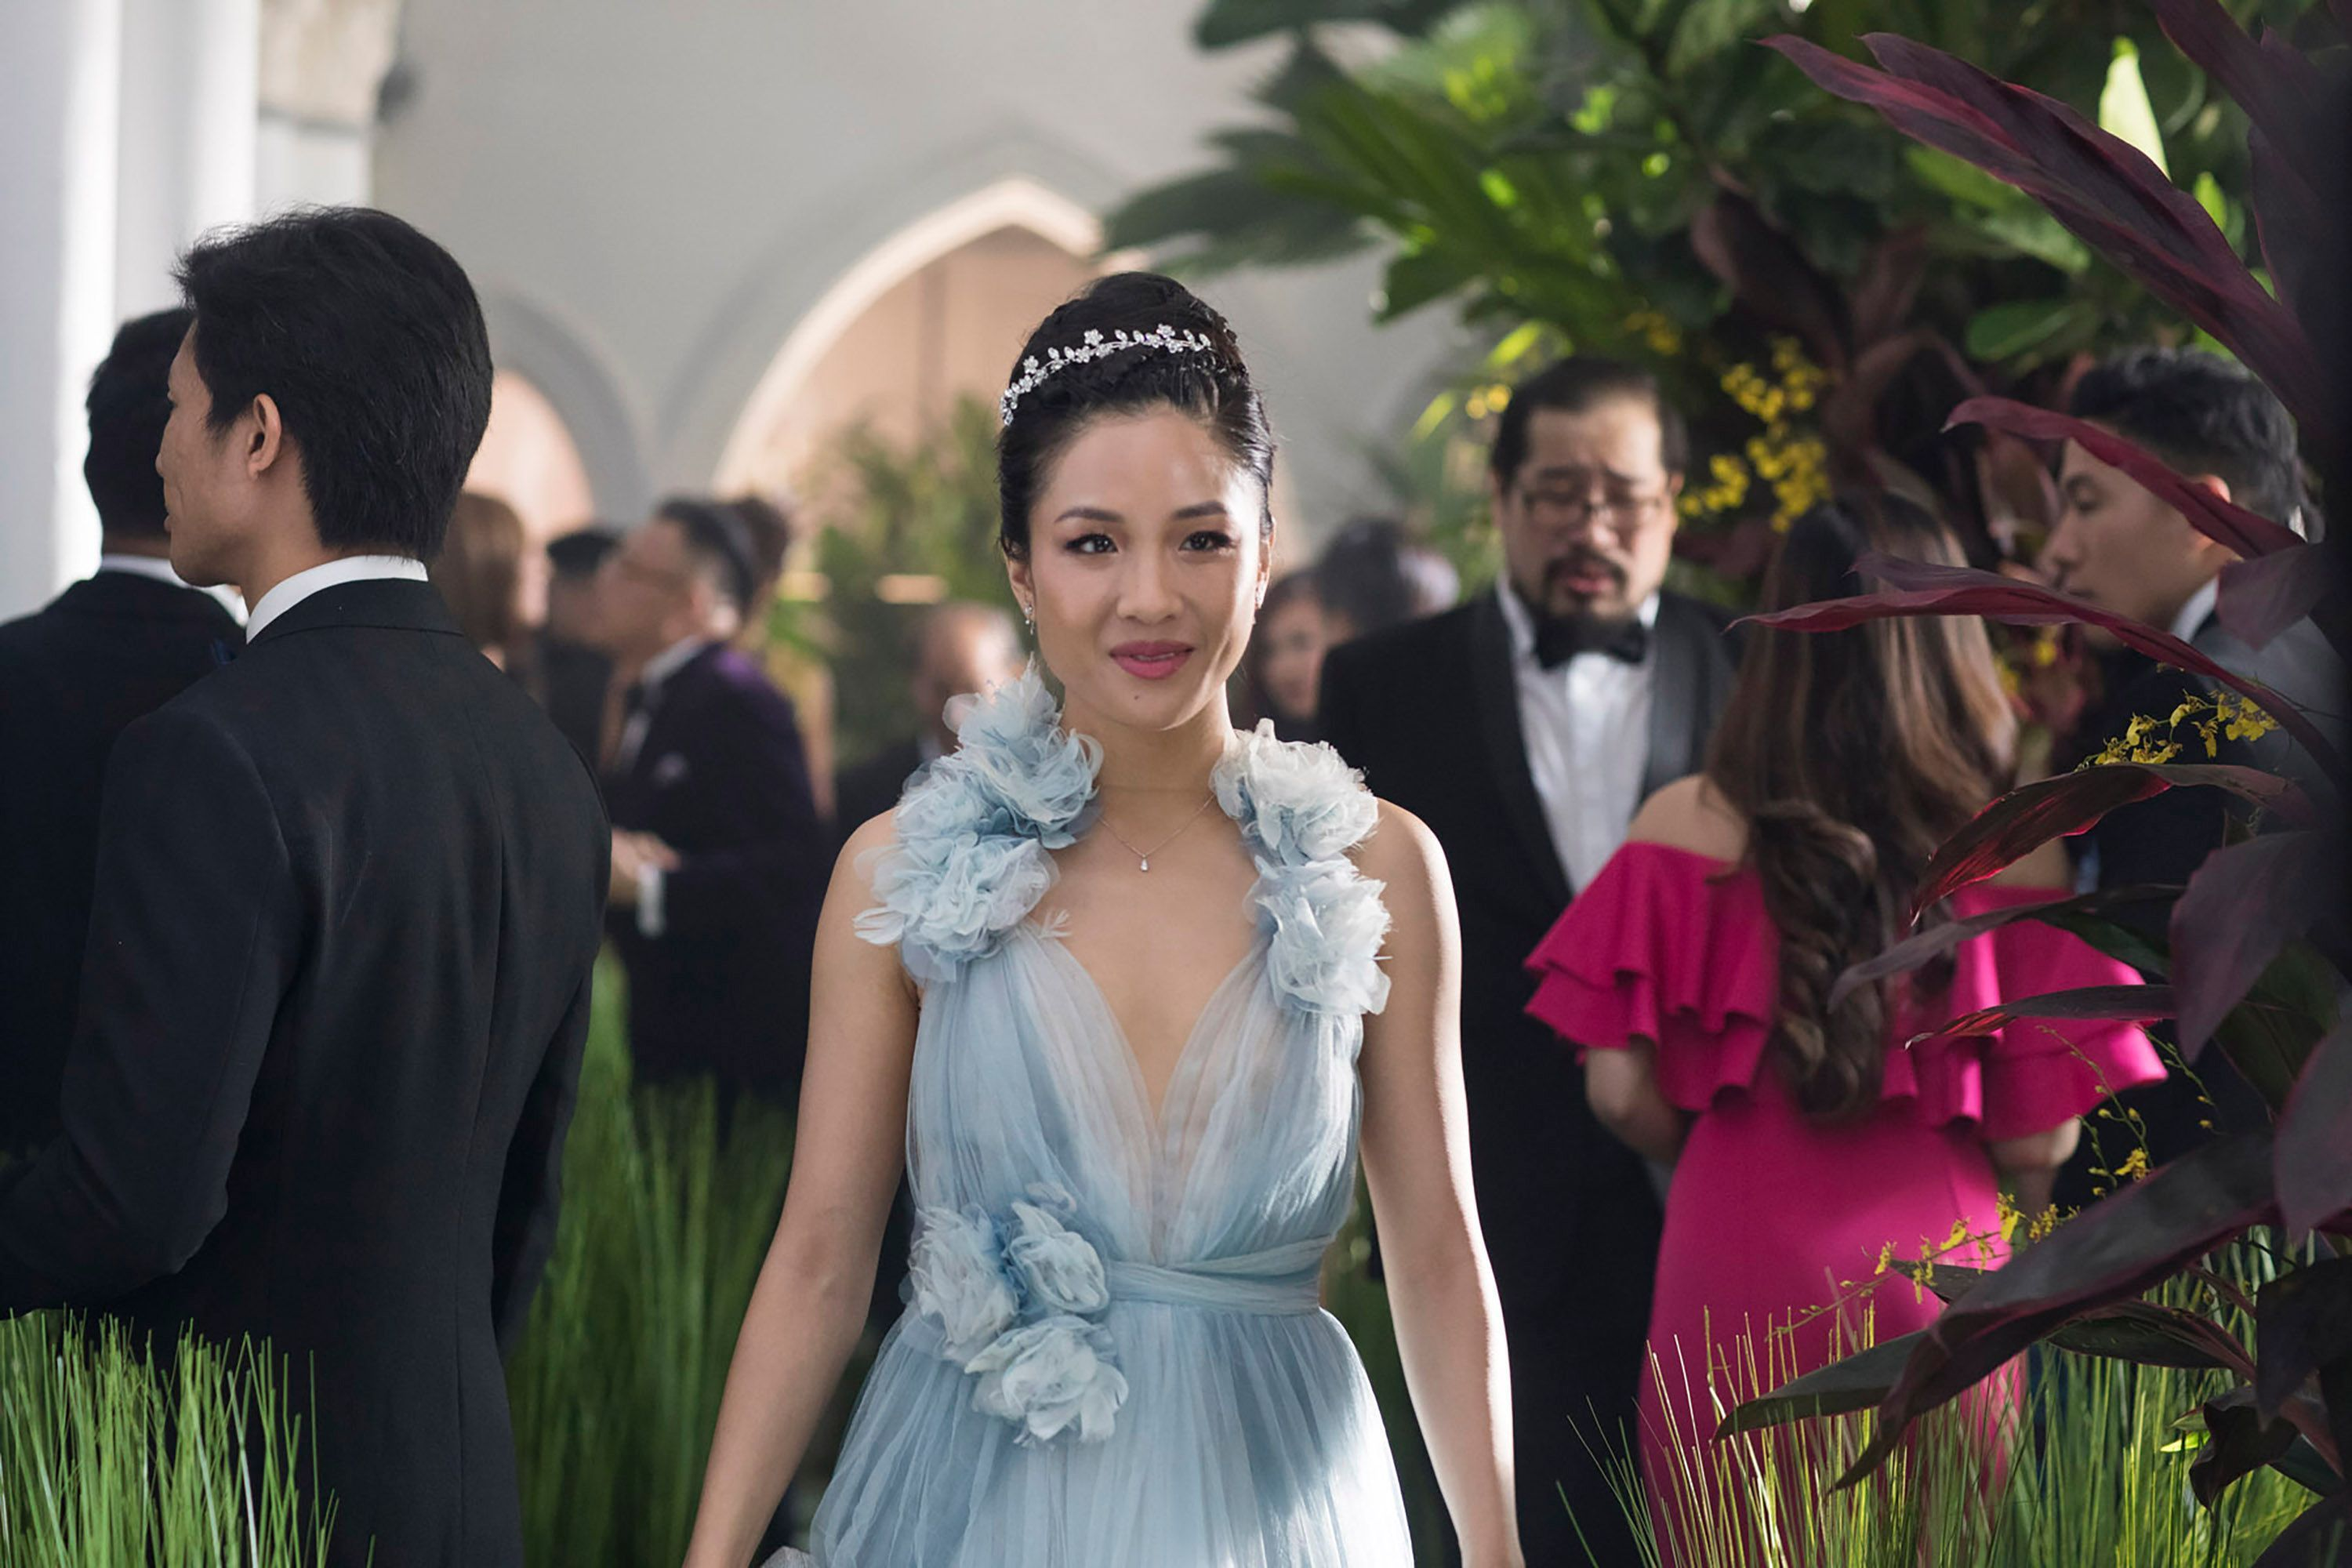 First look: The trailer for 'Crazy Rich Asians' unleashes a flashy world of excess and drama